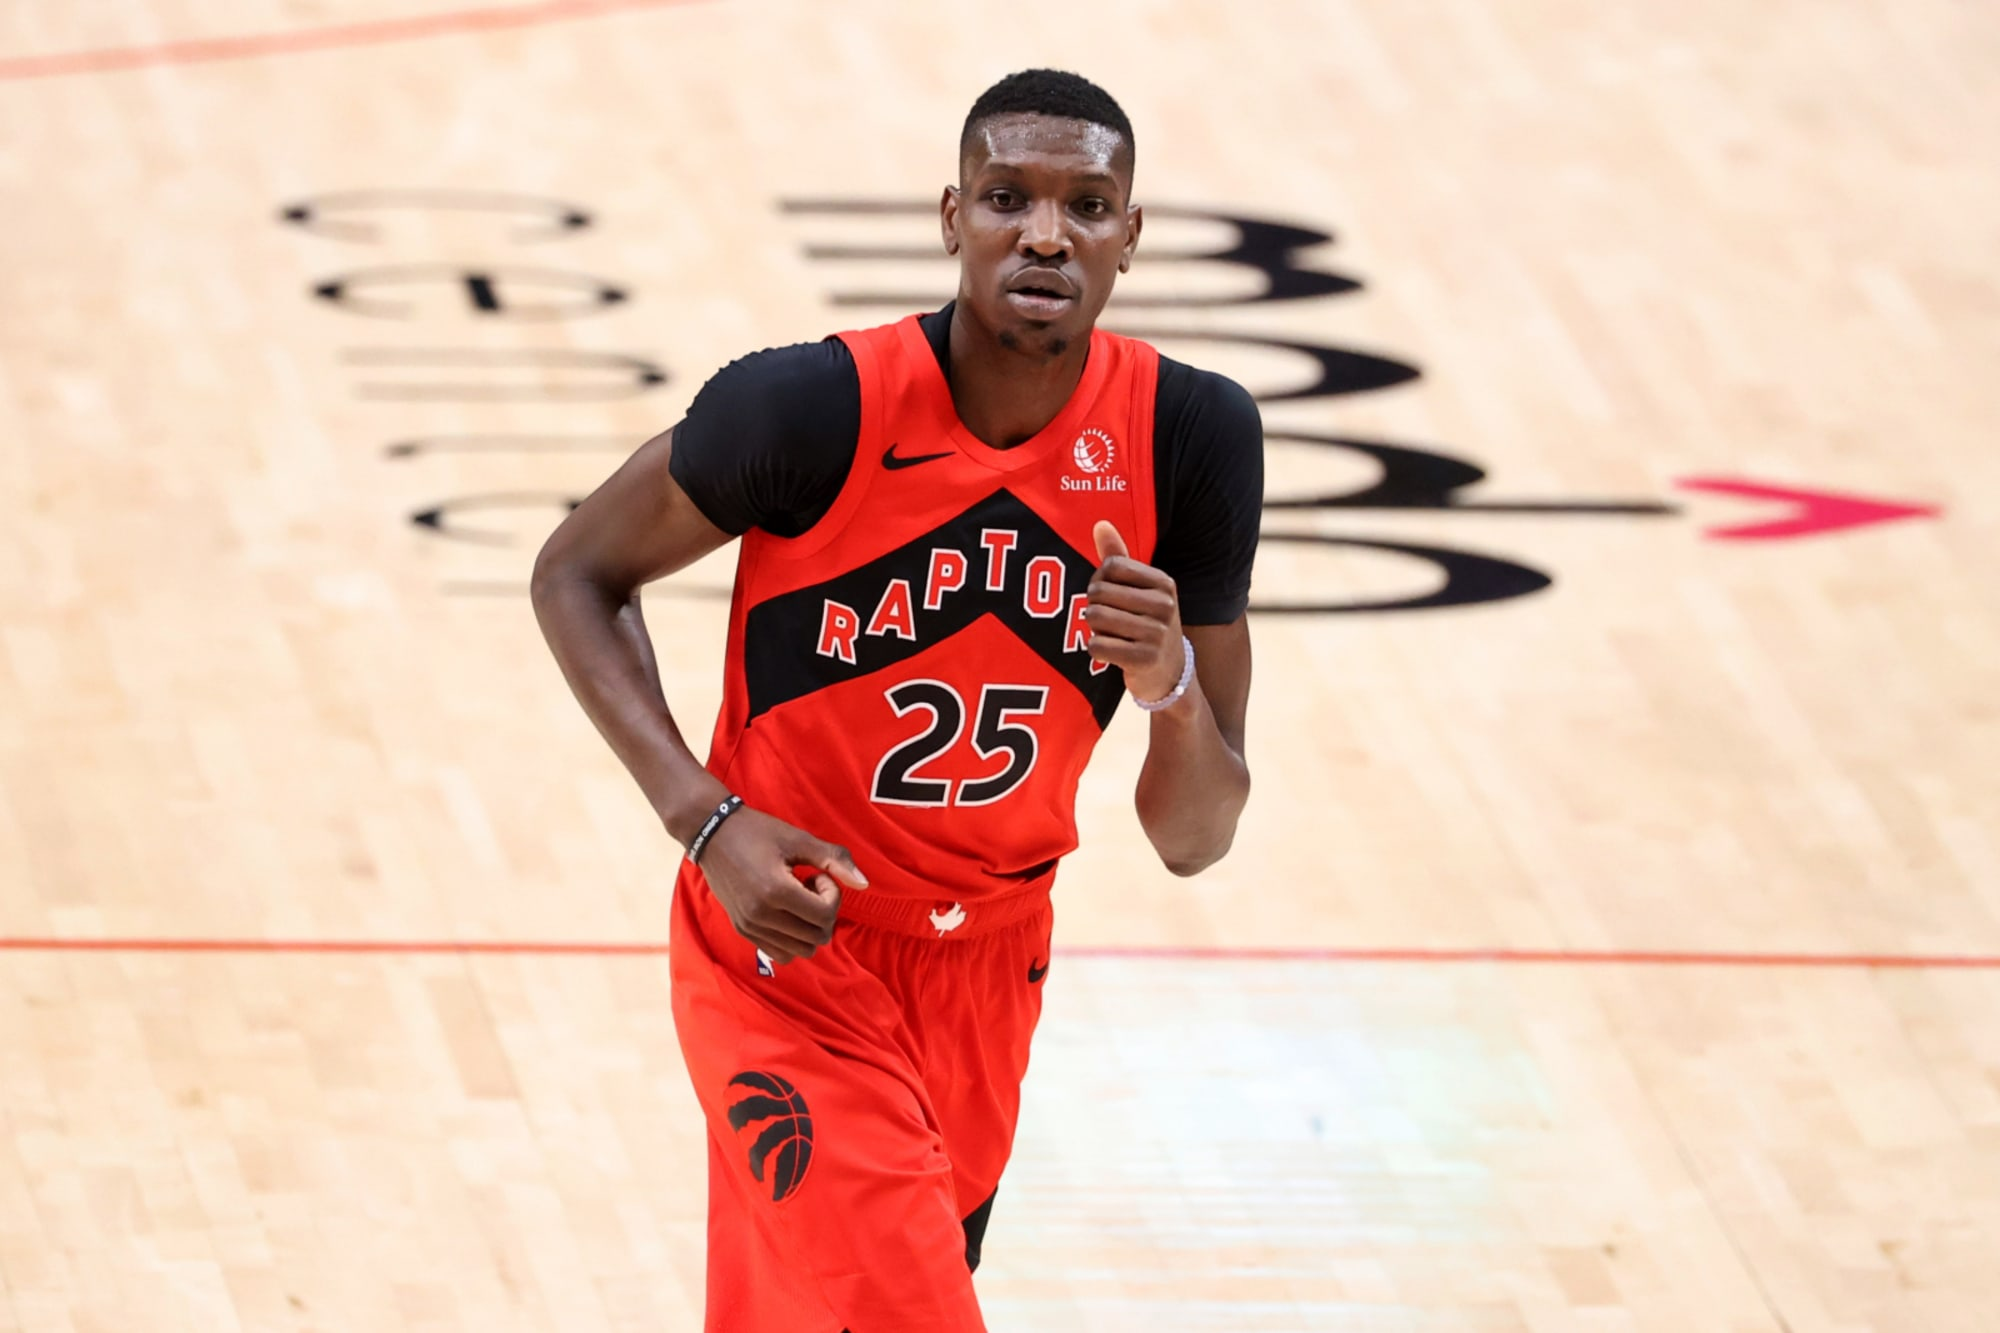 Raptors: Chris Boucher could win Most Improved Player in 2020-21